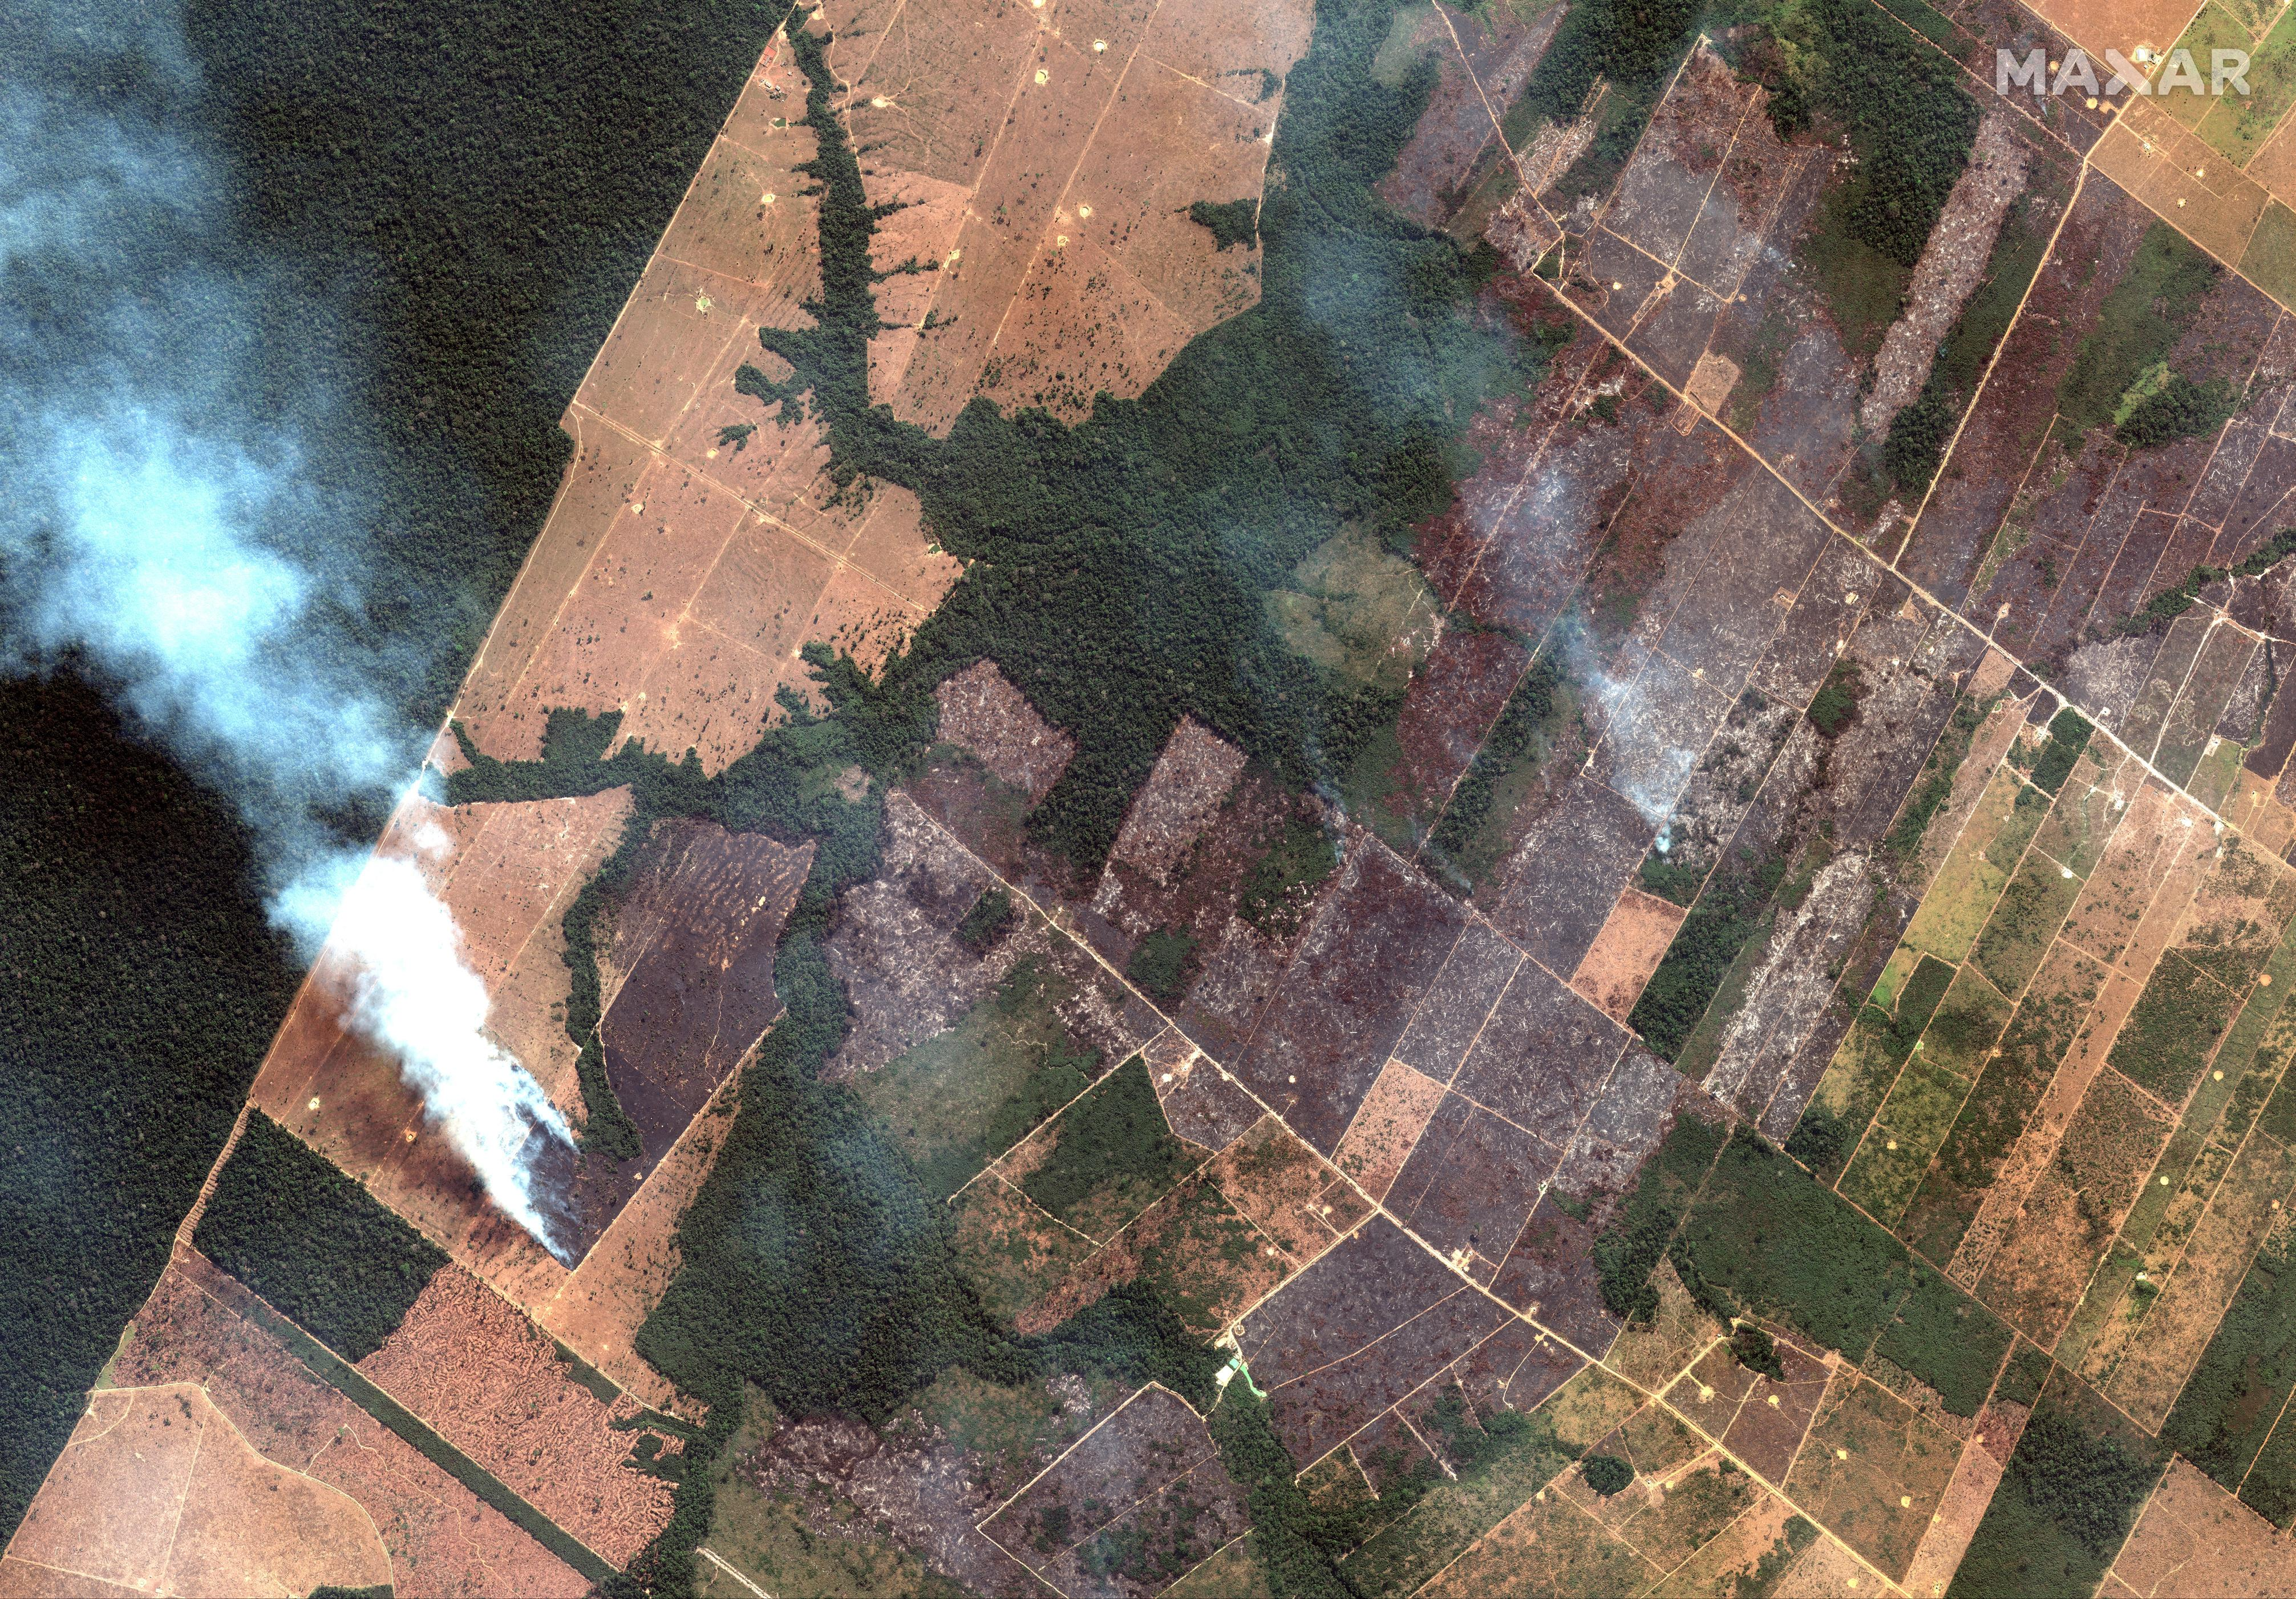 Brazil prosecutors probe surge in Amazon deforestation and fires